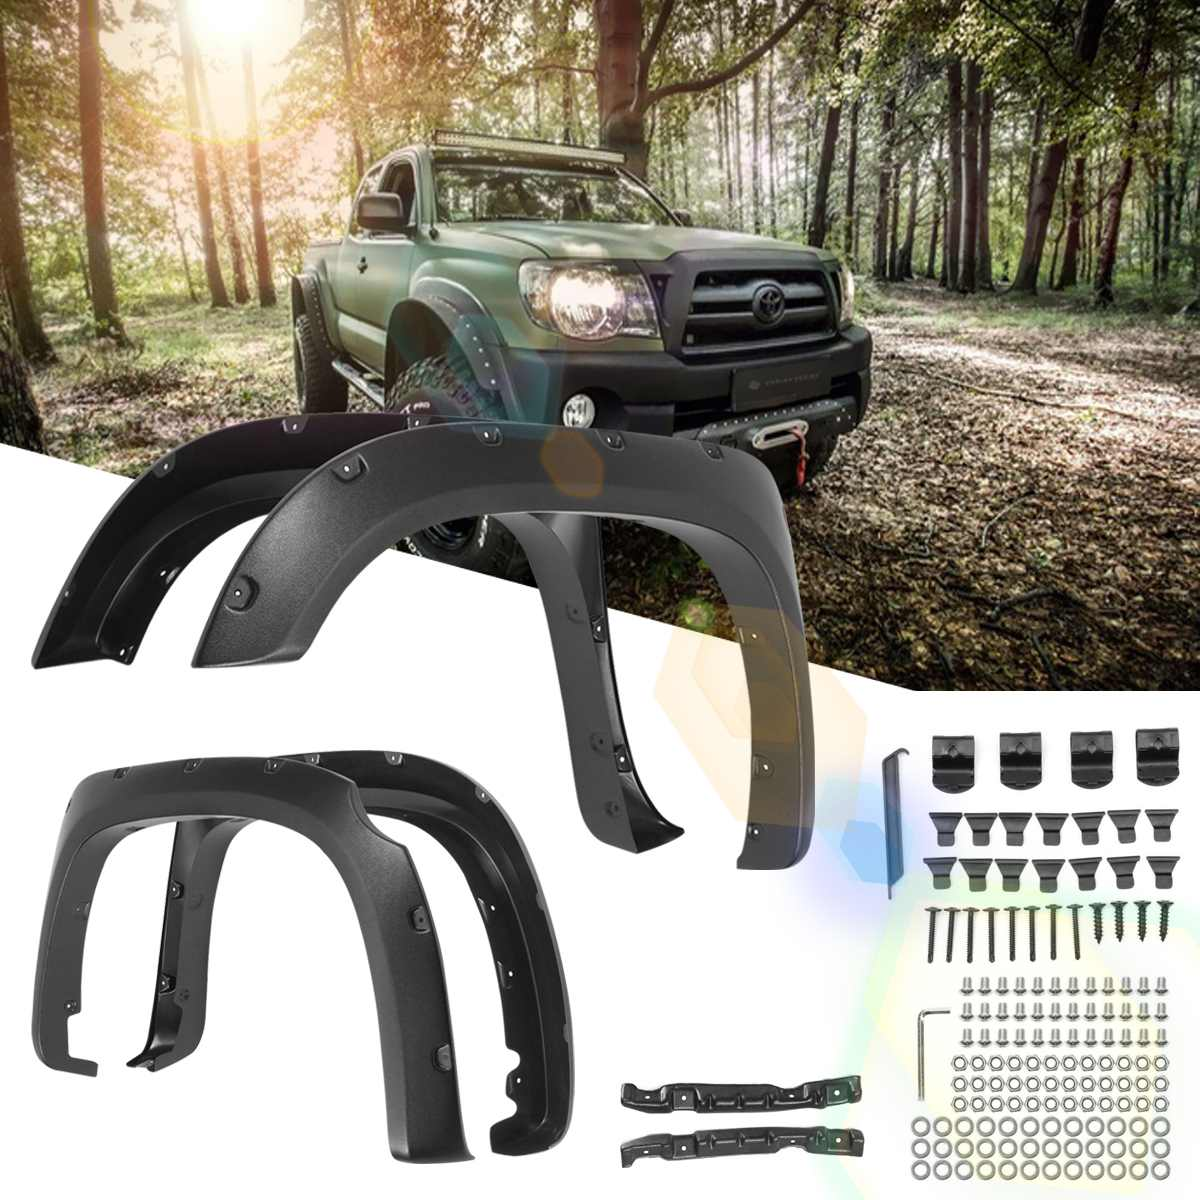 2019 Newset 4pcs/Set Rear /Front For Fender Flares For Toyota Tundra 2014-2017 Smooth Surface Style/Striae Style